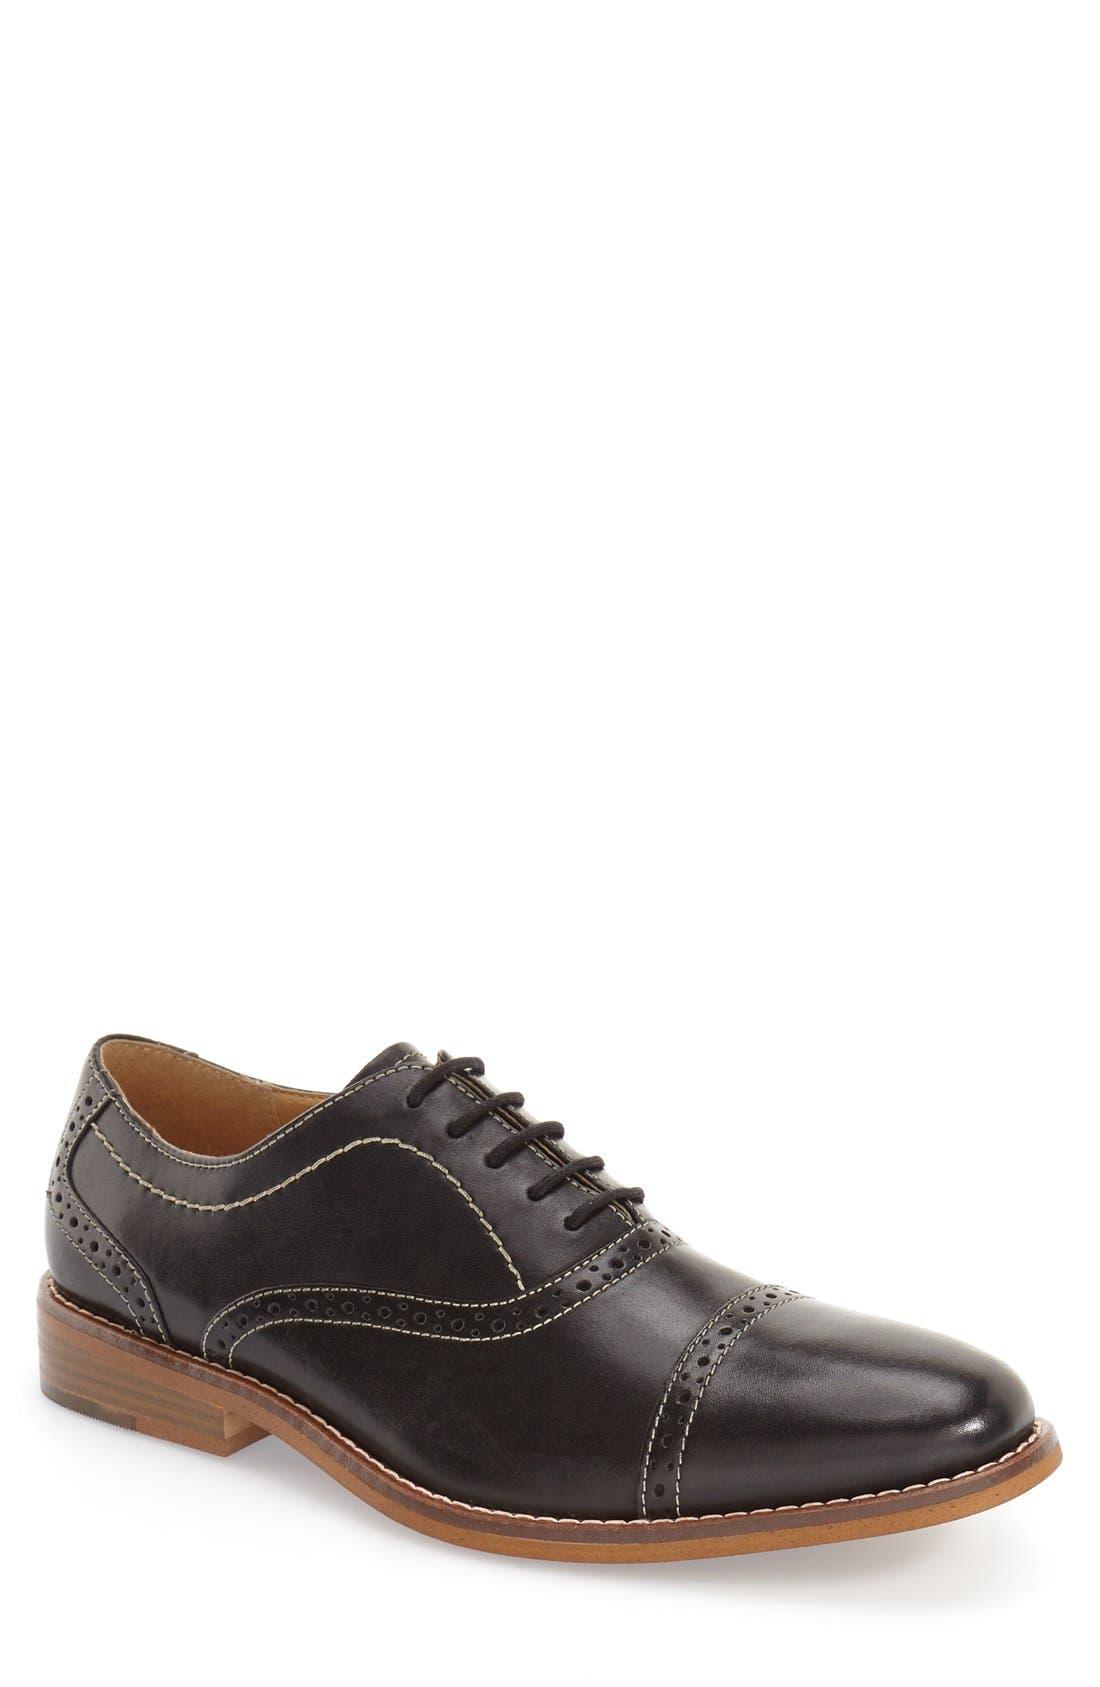 Alternate Image 1 Selected - G.H. Bass & Co. 'Carnell' Cap Toe Oxford (Men)